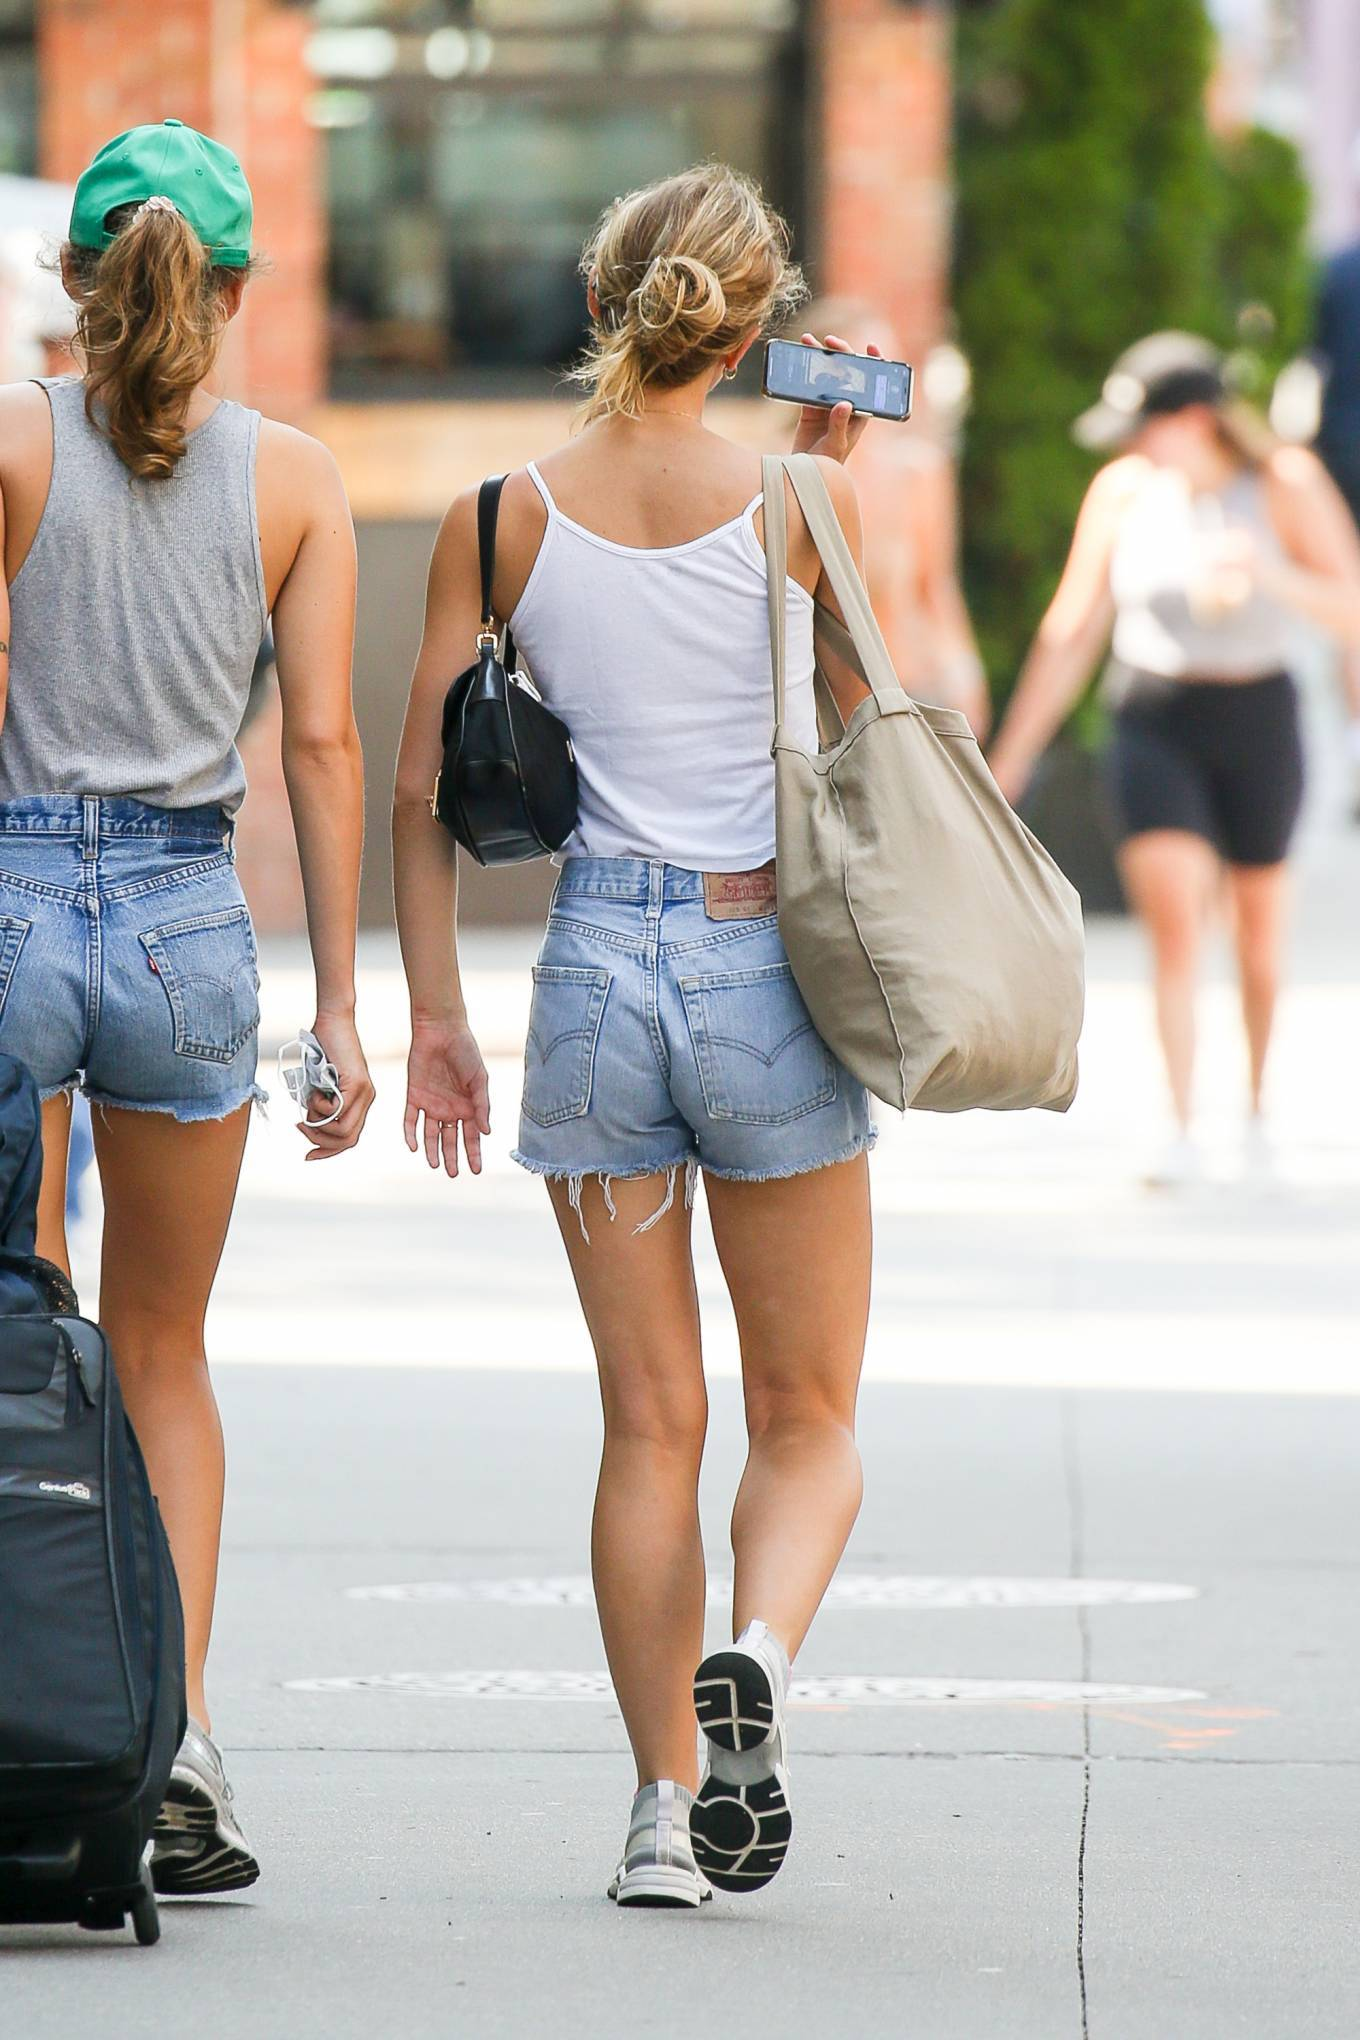 Lily-Rose Depp - Walks with a friend in New York